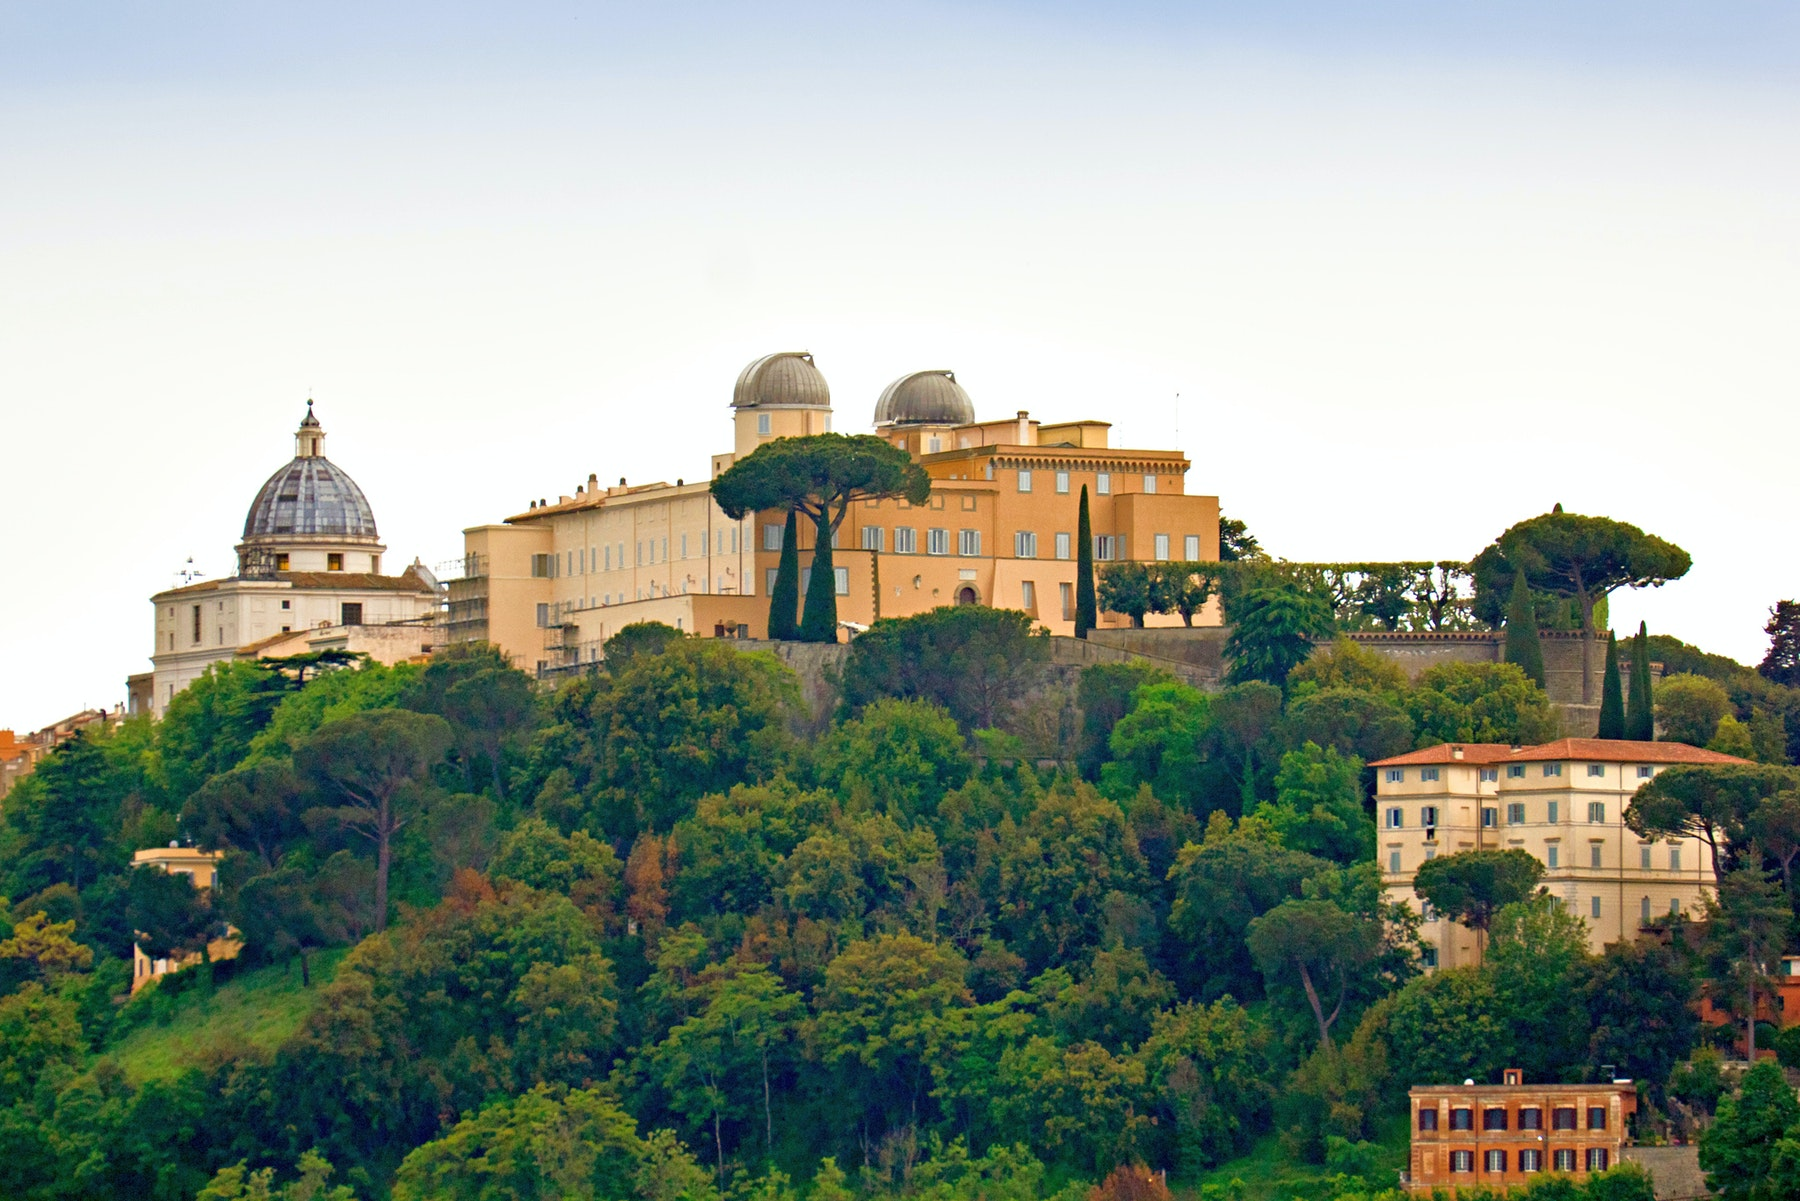 papal palace of castel gandolfo